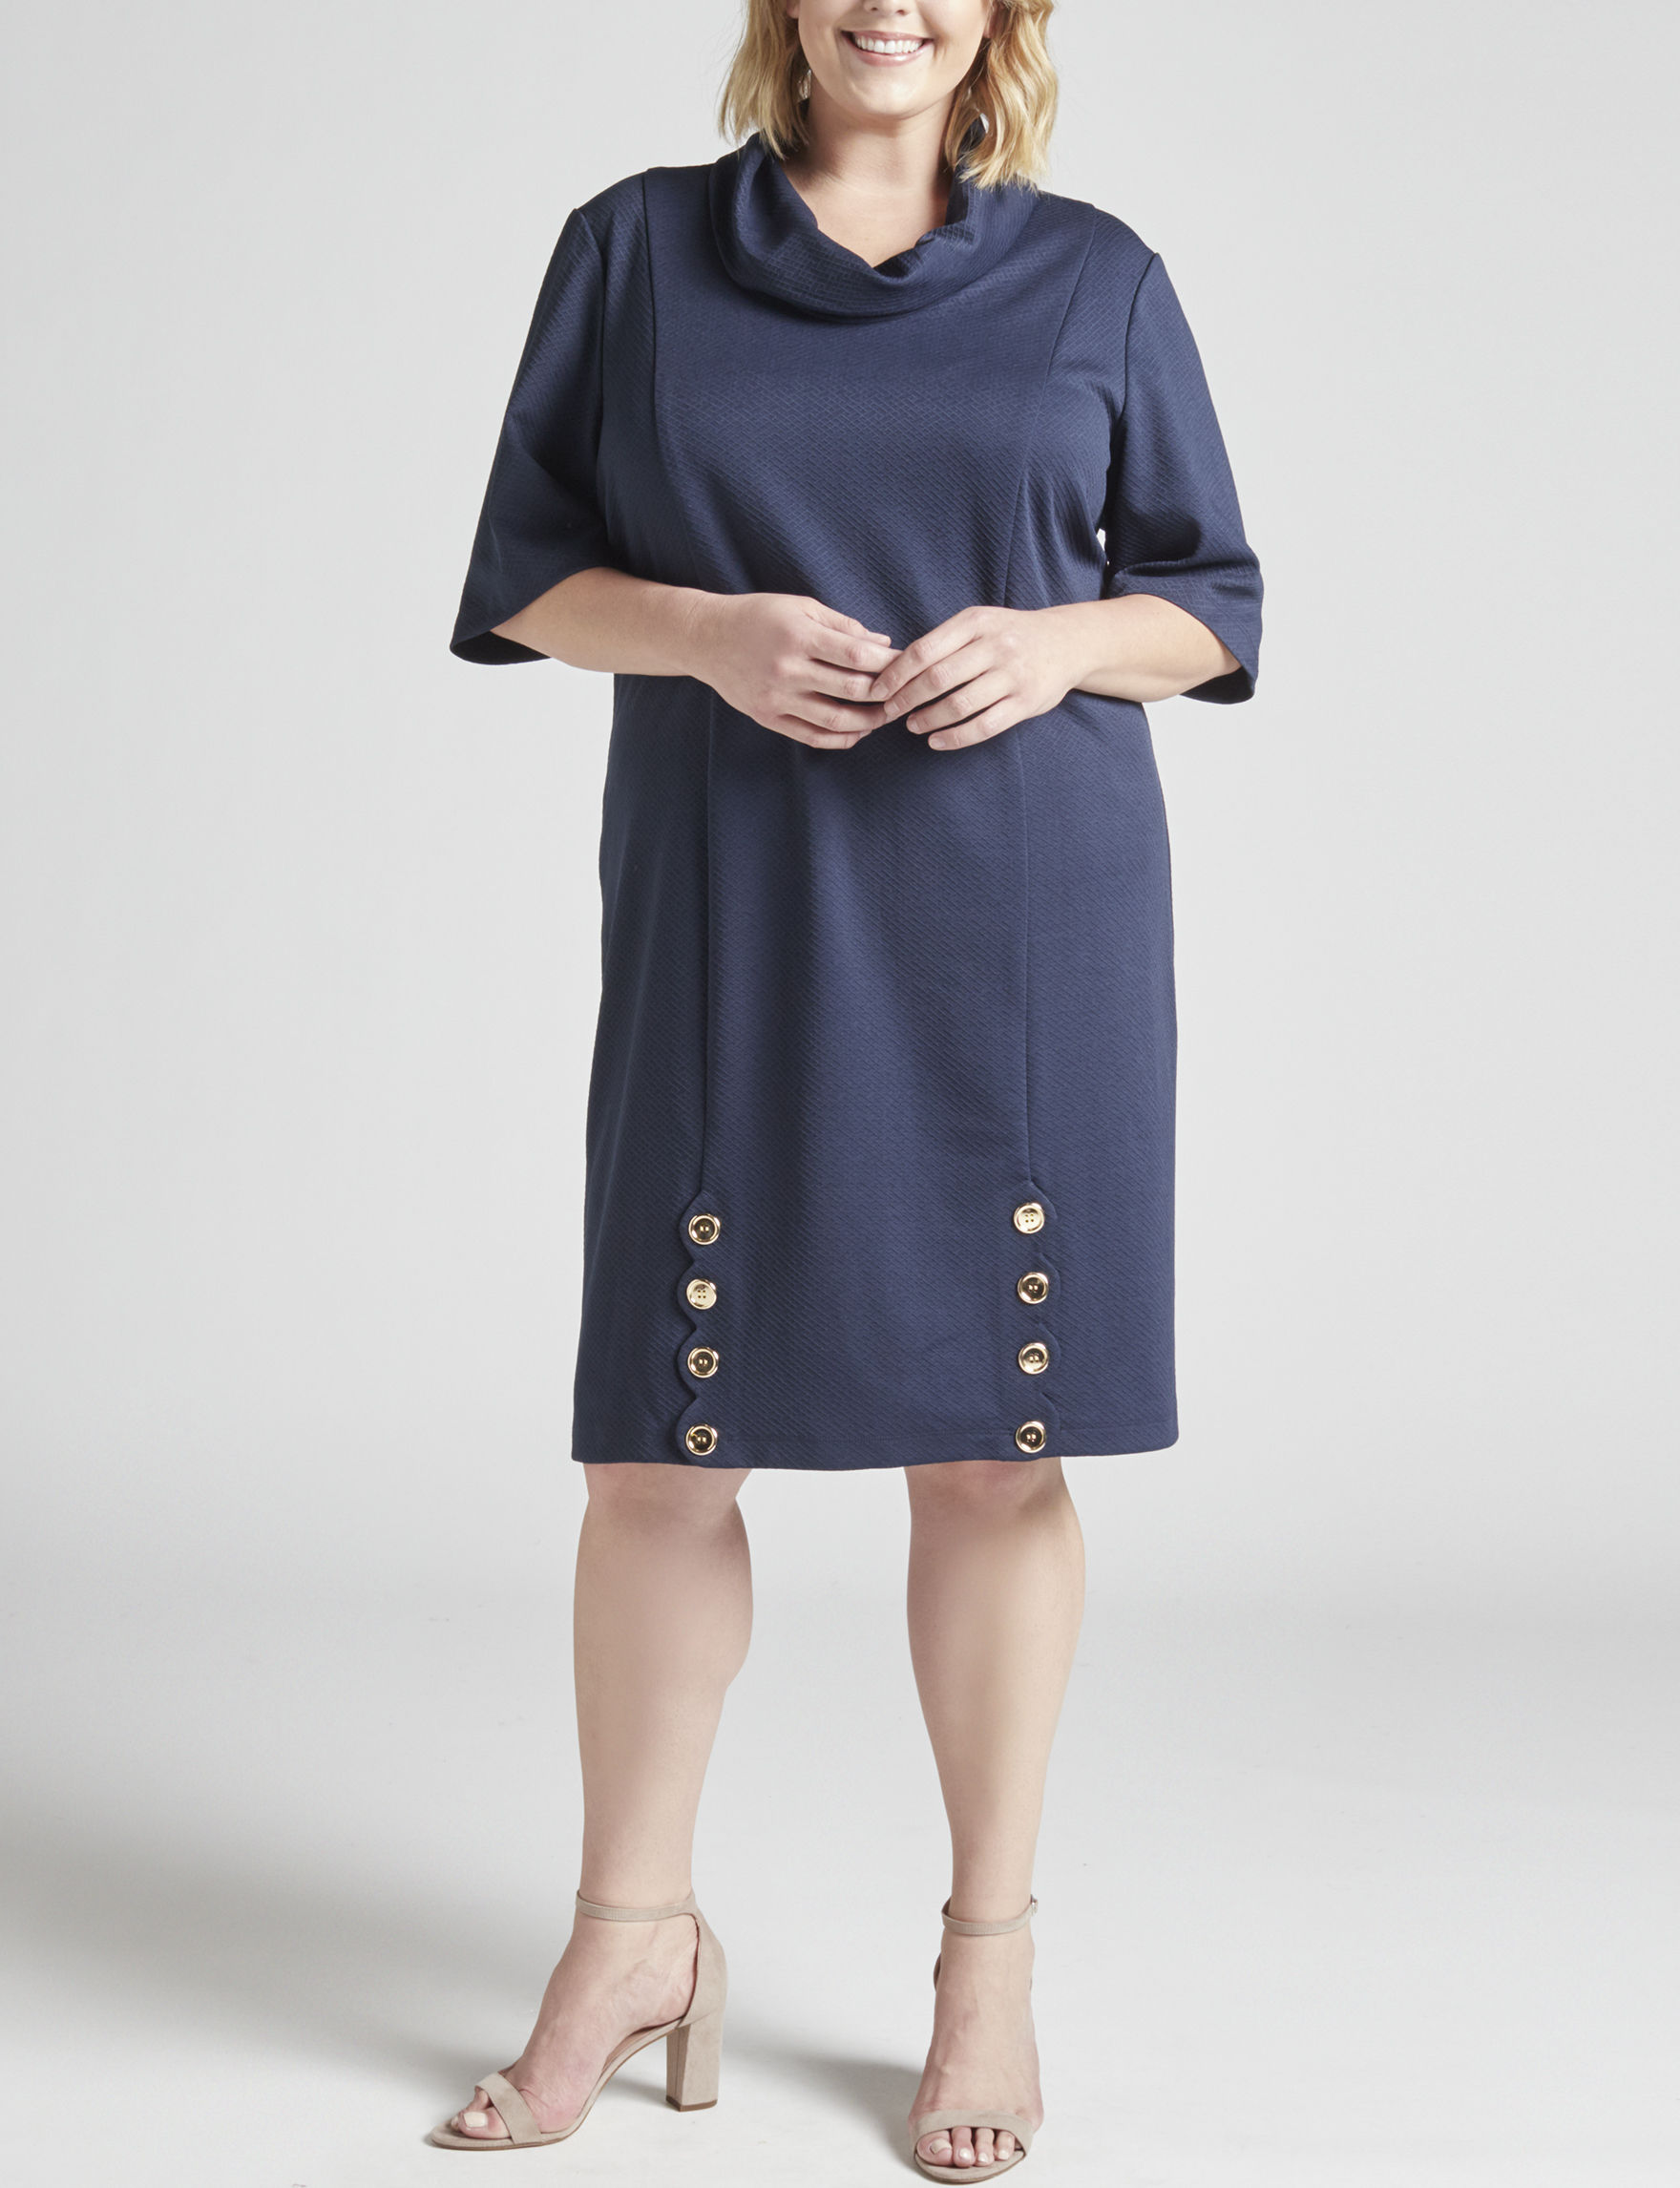 Perceptions Navy Everyday & Casual Sheath Dresses